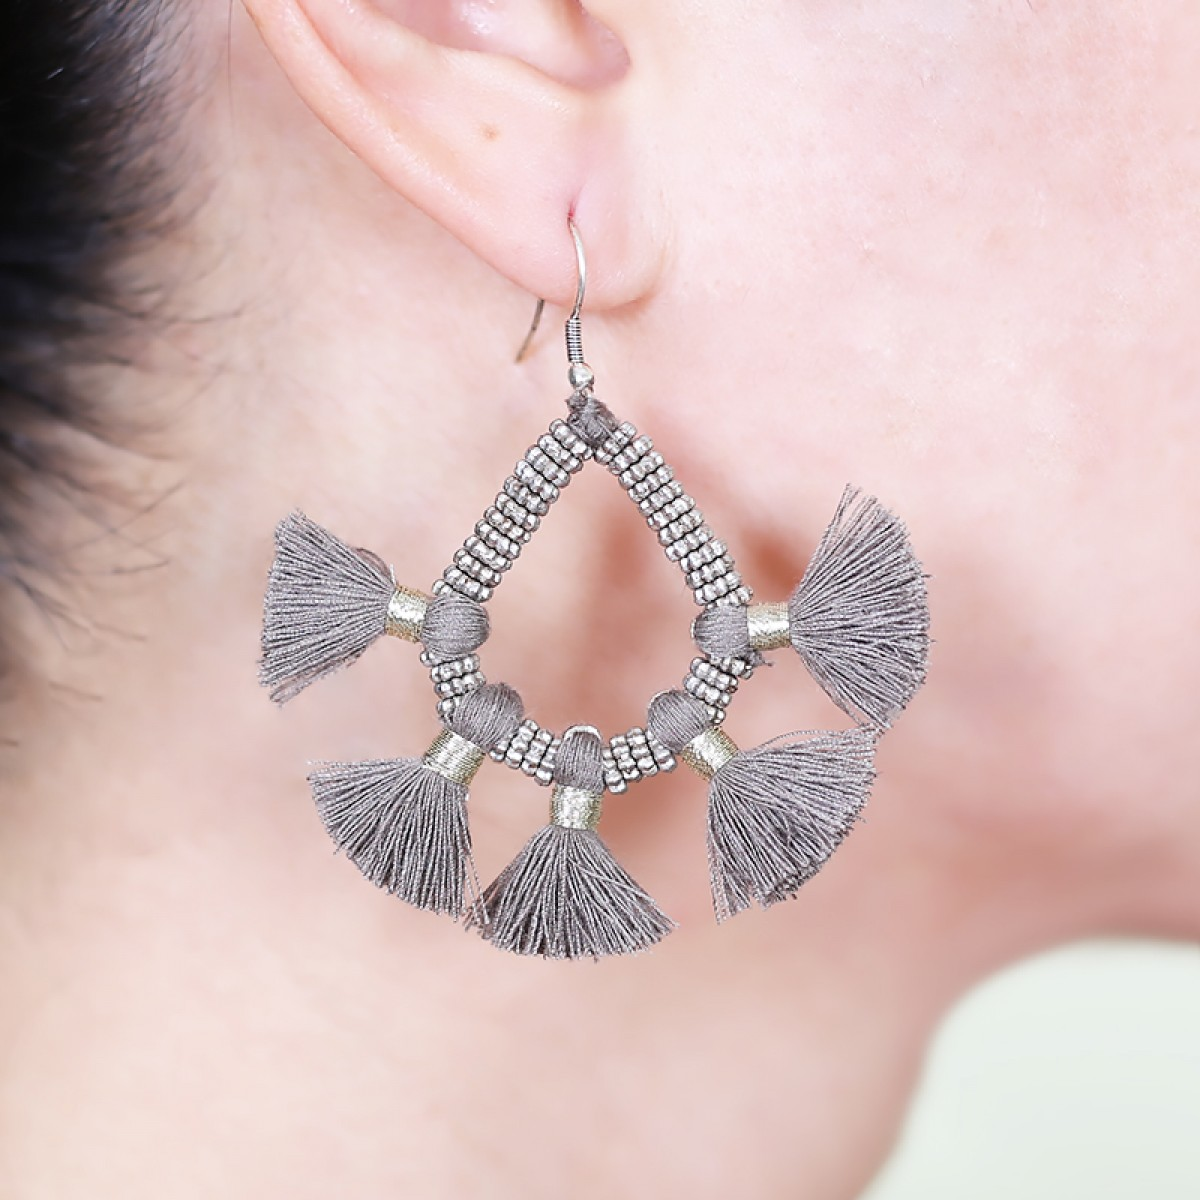 Bohemian Fashion Tassel Earrings - Grey